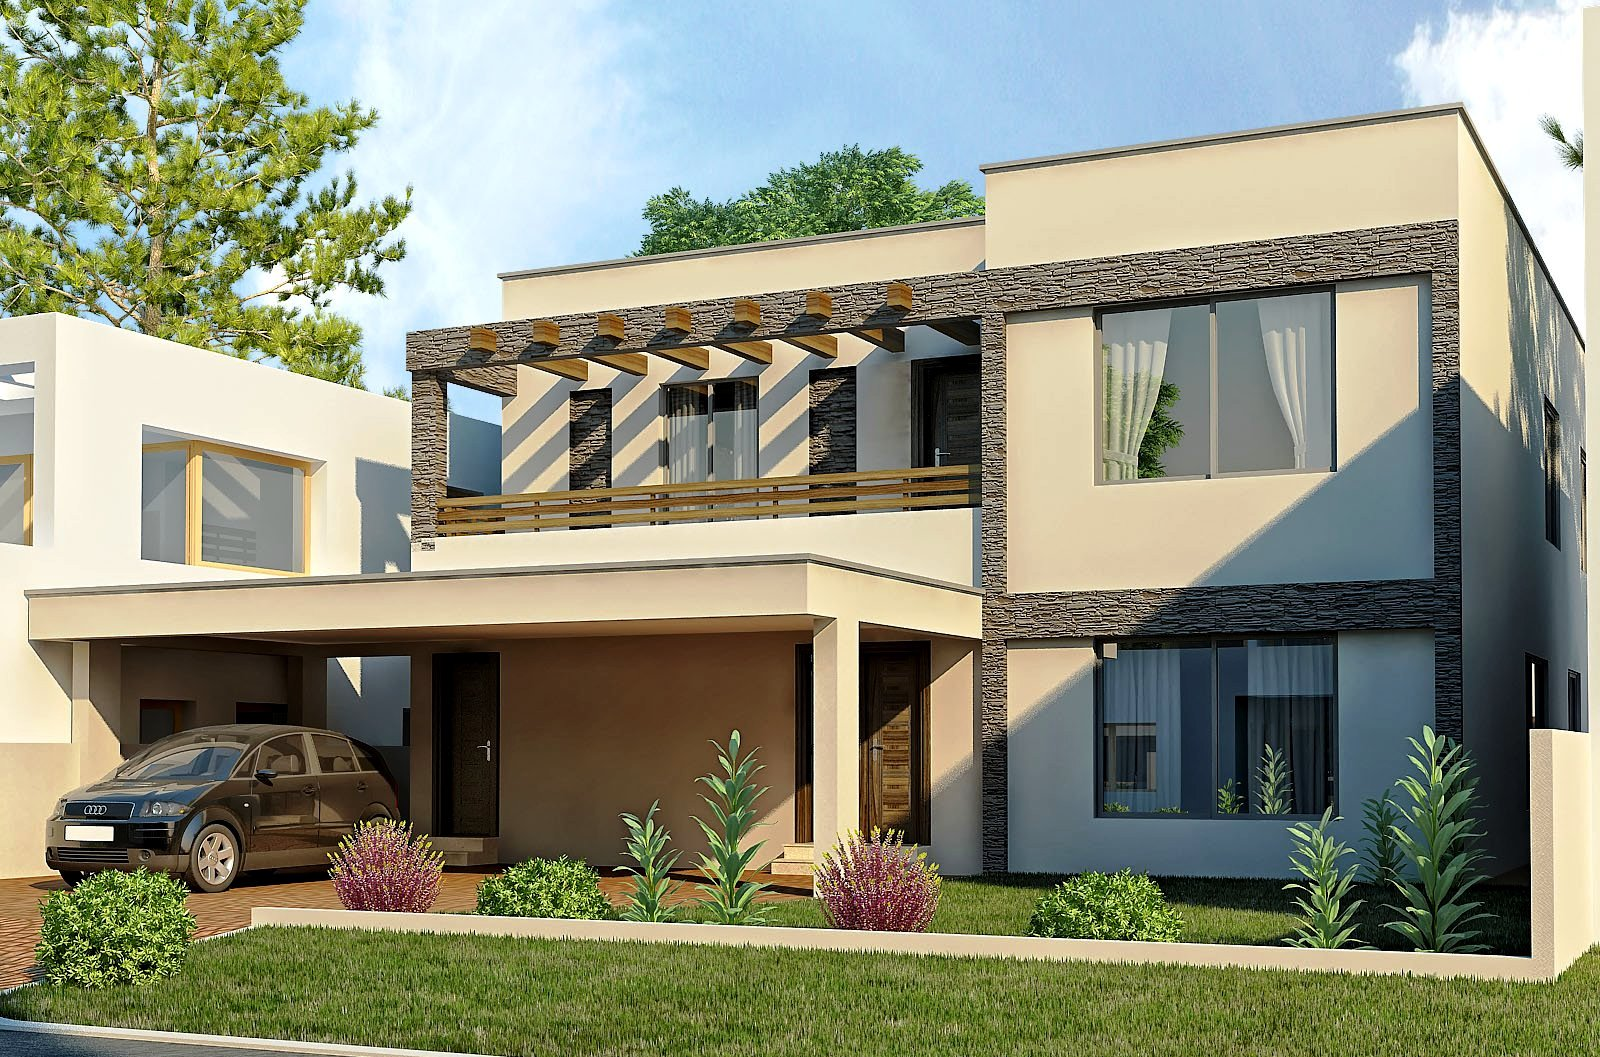 New home designs latest modern homes exterior designs views for New home design ideas